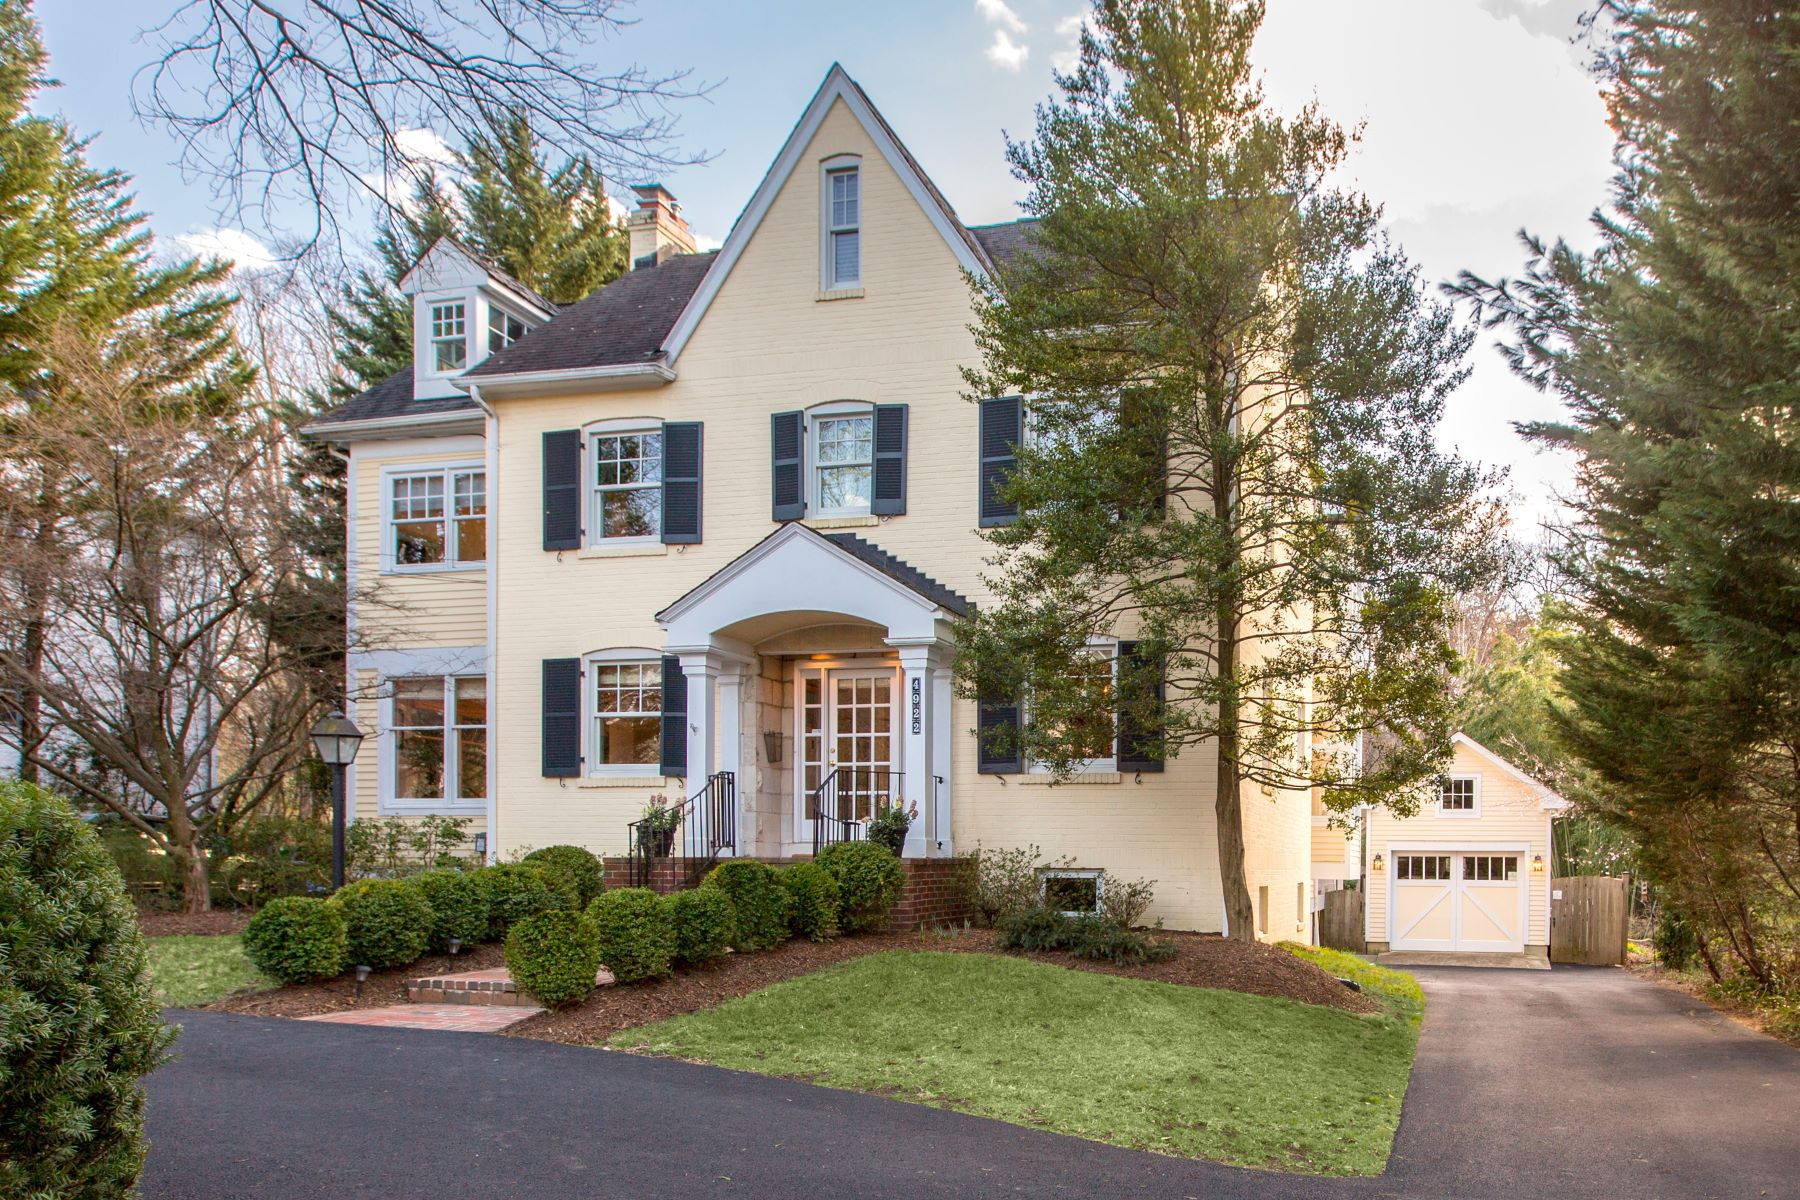 Single Family Home for Sale at 4922 Dorset Avenue, Chevy Chase Chevy Chase, Maryland 20815 United States